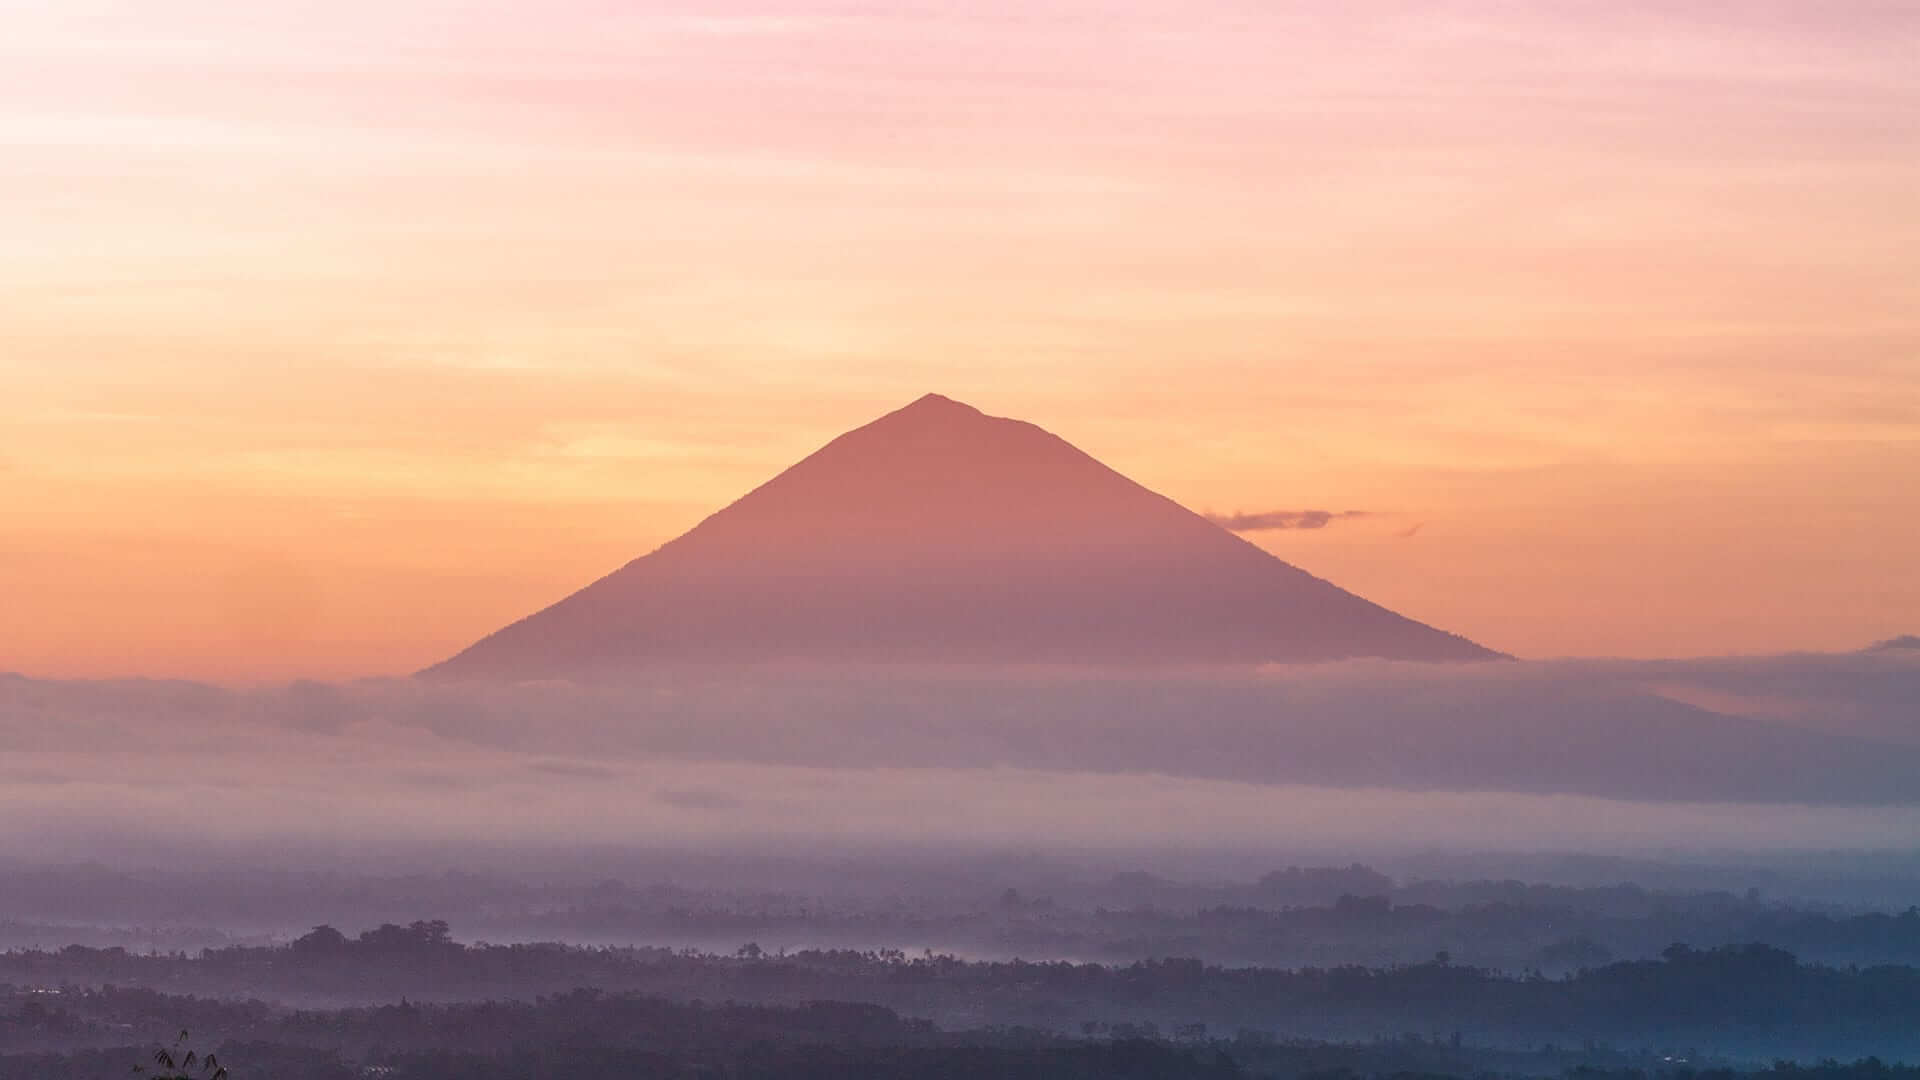 Backlit Volcano in sunset misty landscape